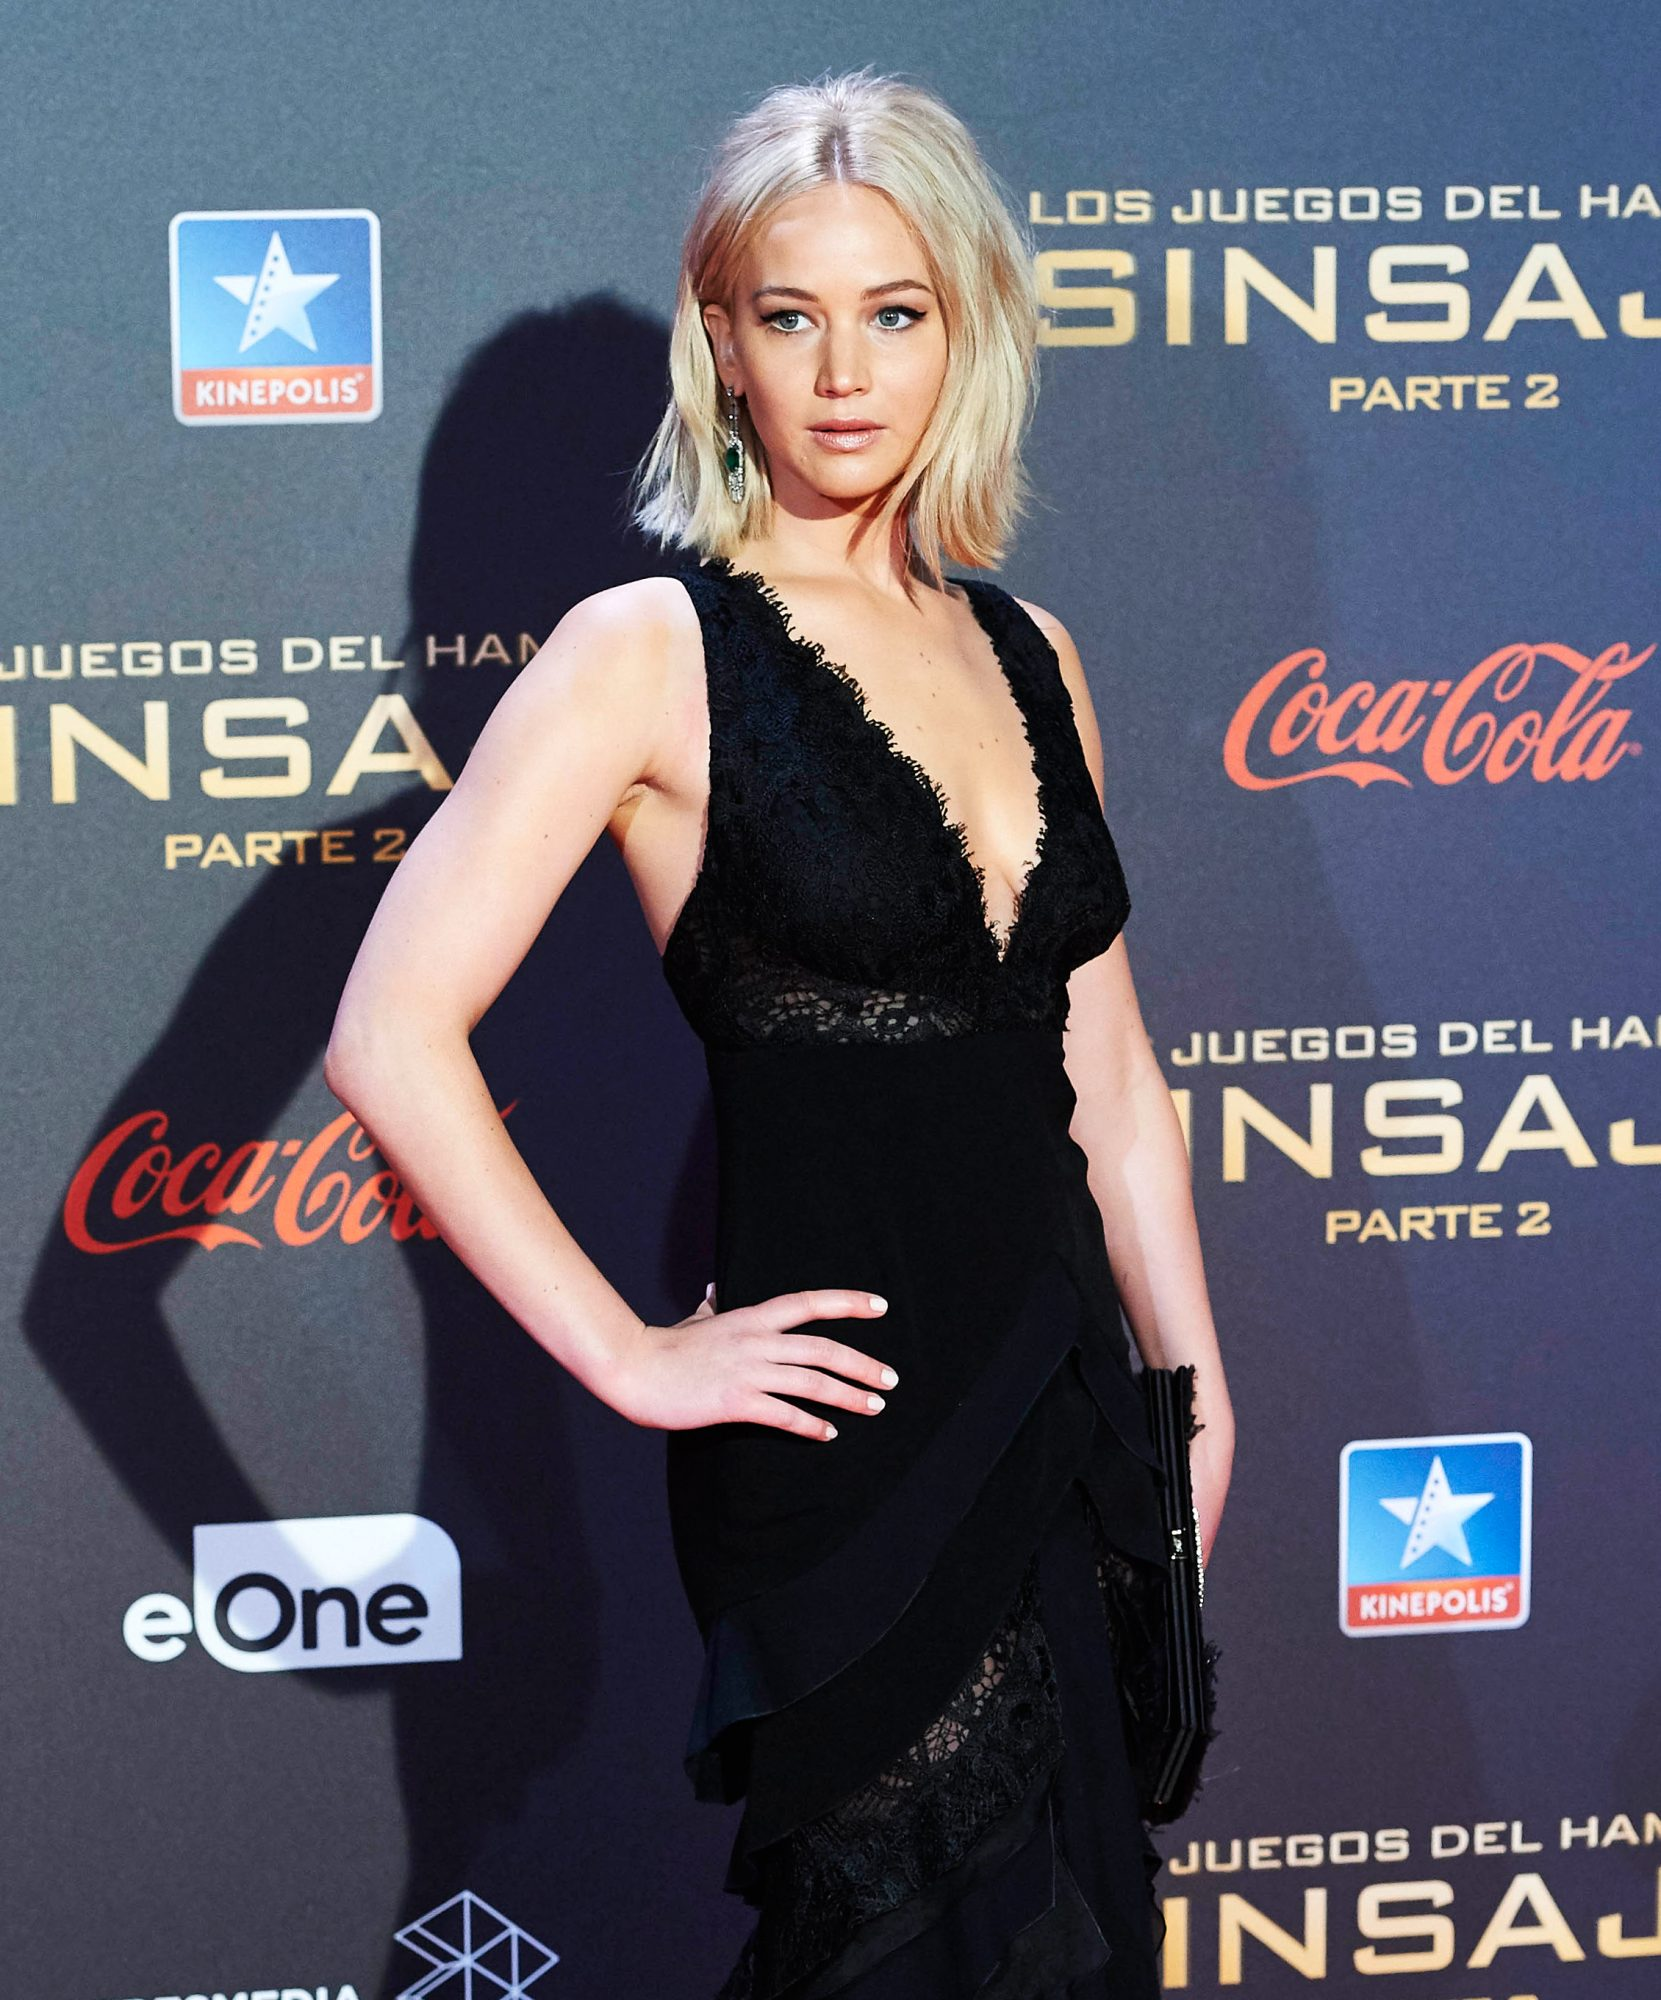 10-11-2015 Premiere Jennifer Lawrence attended the 'Hunger Games: Mockingjay Part 2' Premiere at Kinepolis Cinema in Madrid. (Photo by ddp images) *** Please Use Credit from Credit Field ***